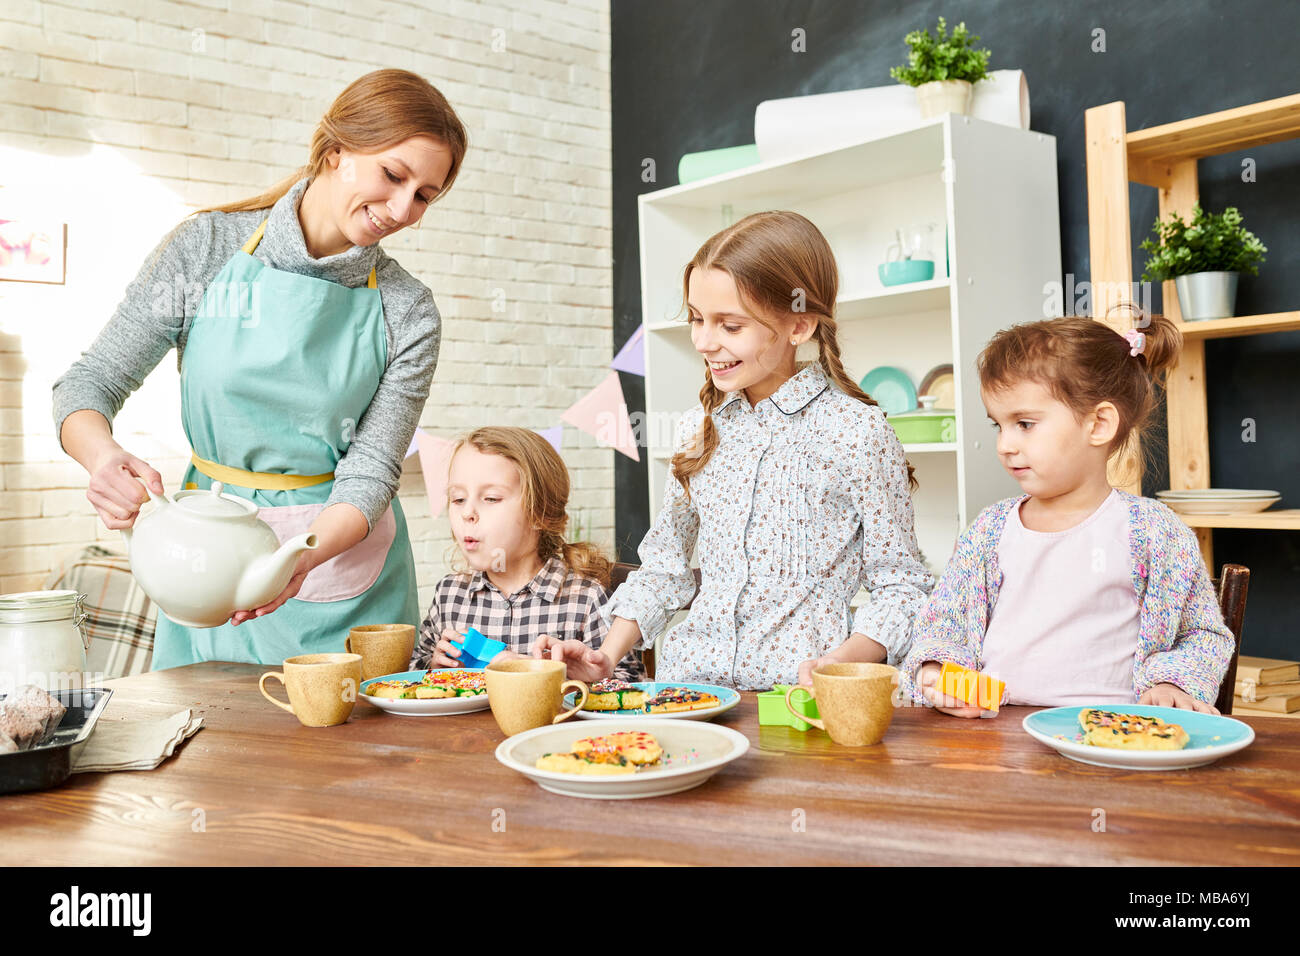 Loving Family Having Tea Party - Stock Image